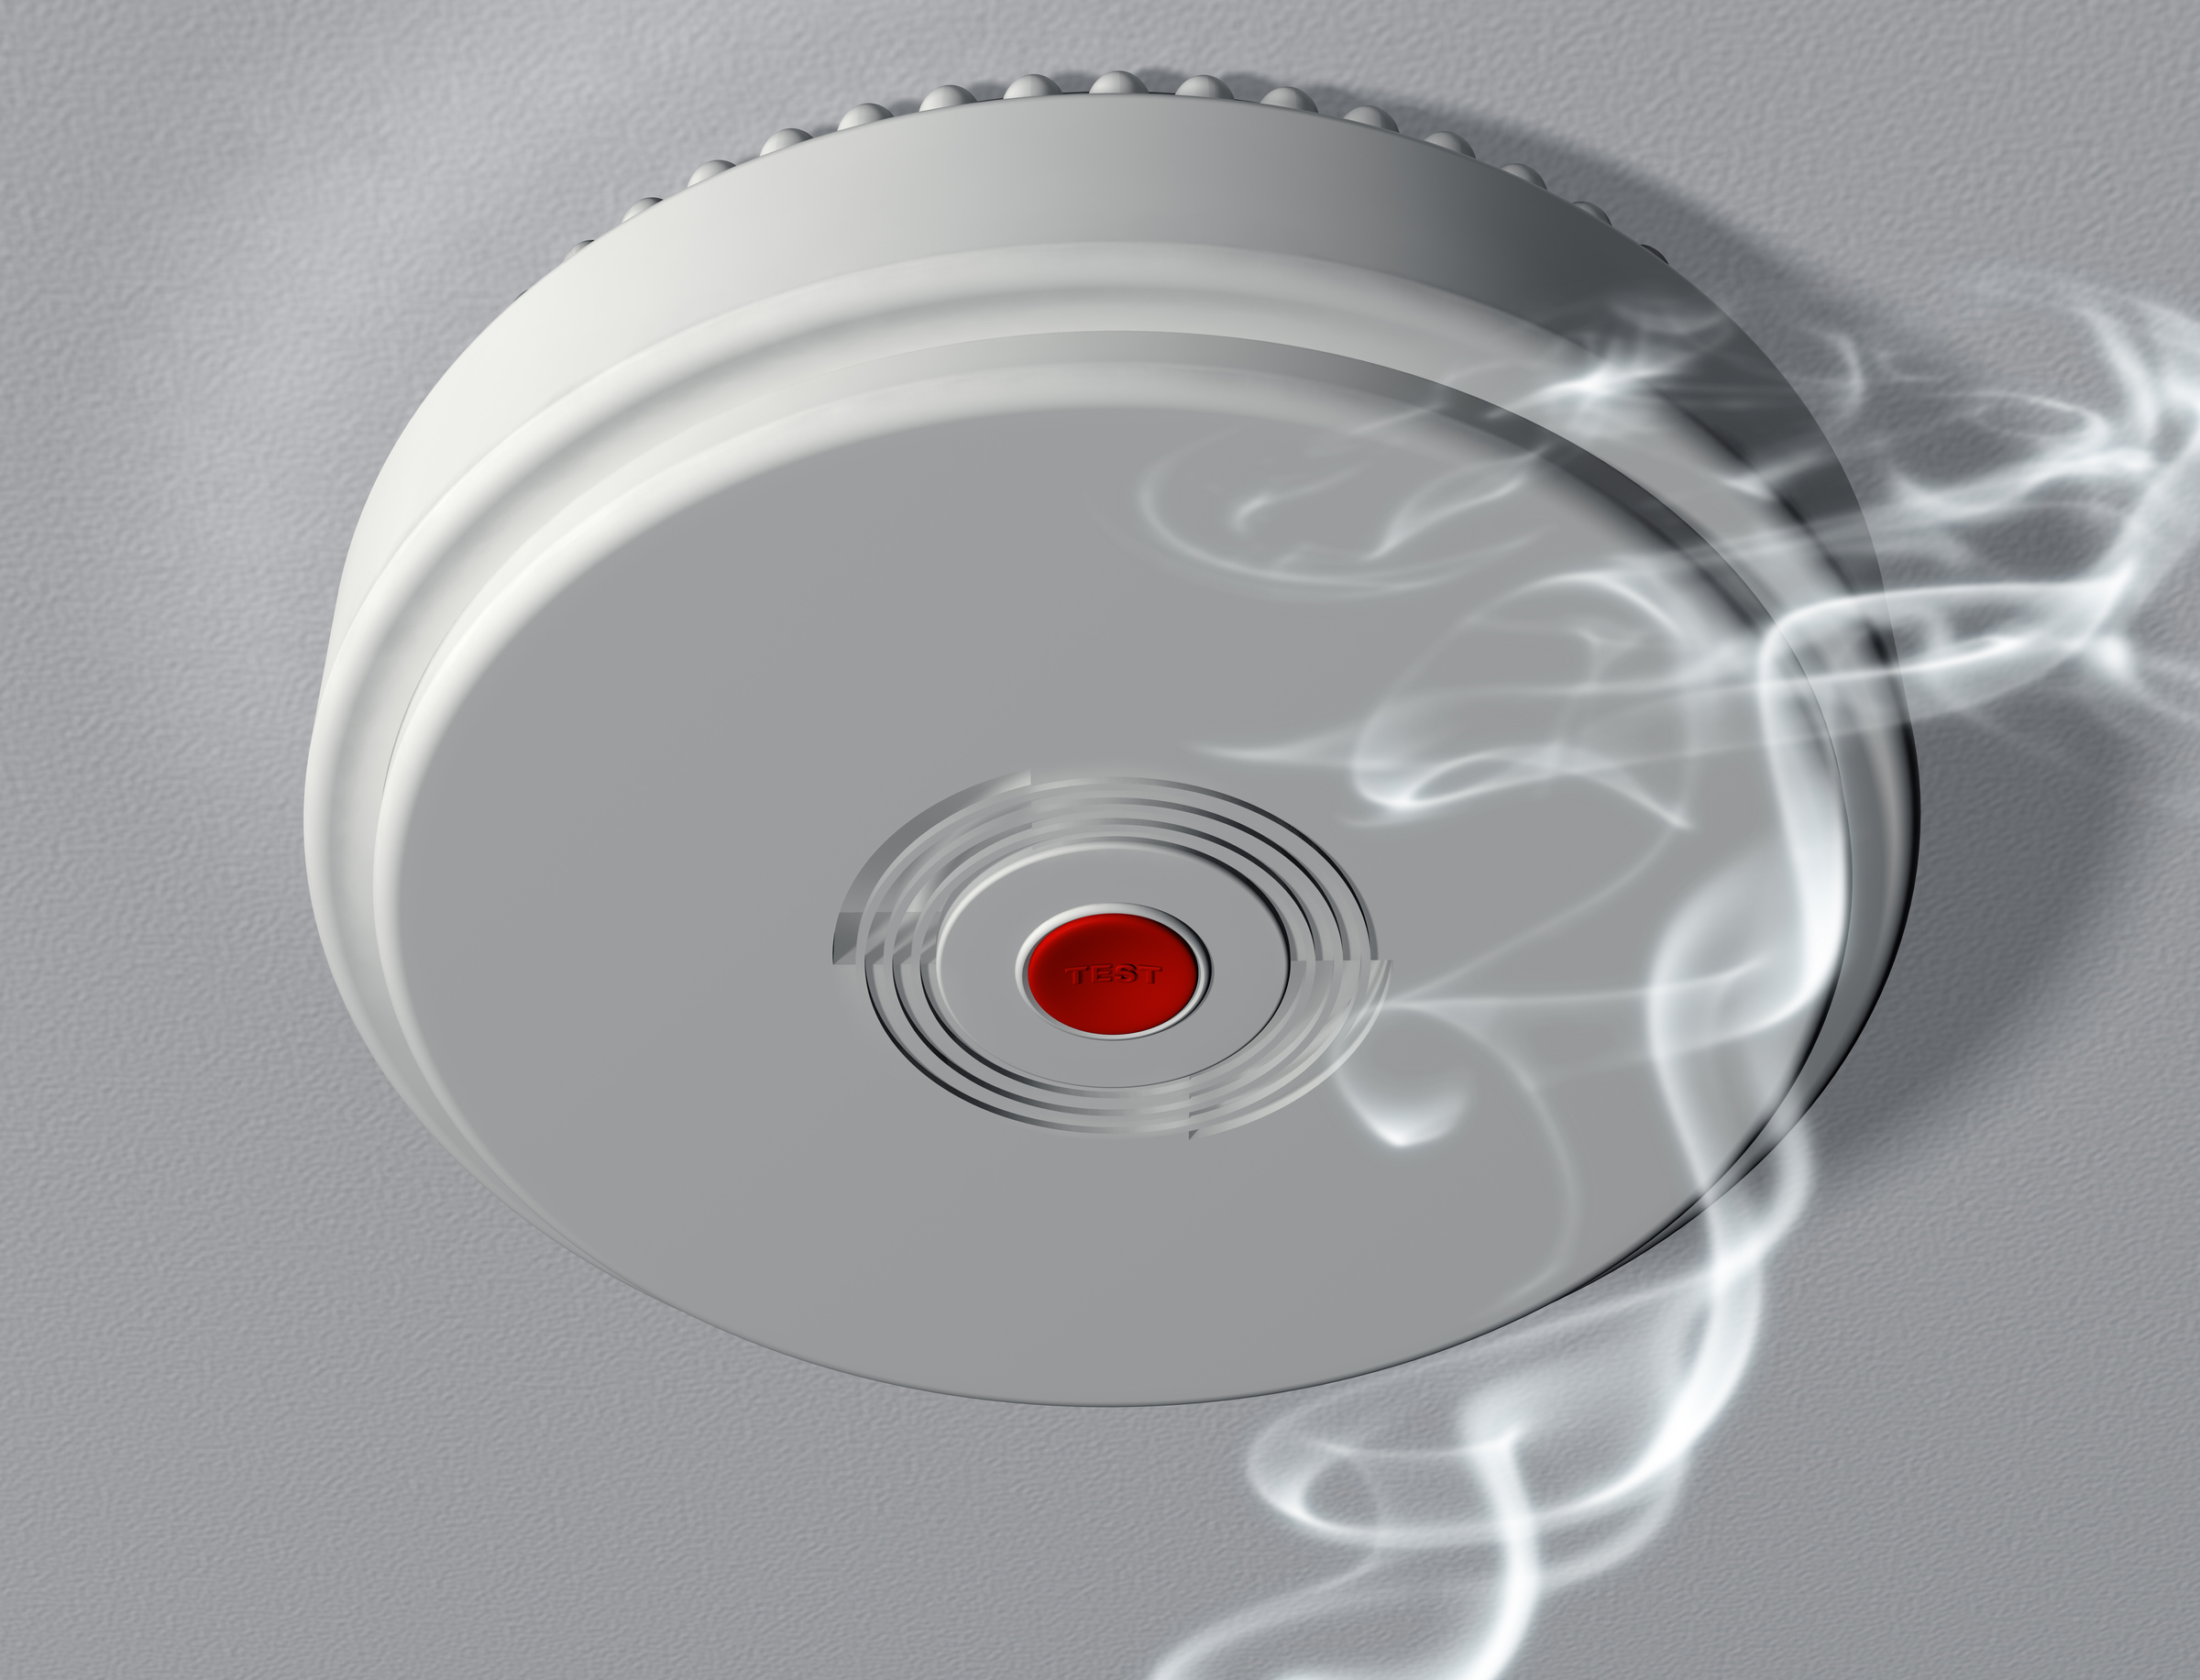 Volunteers needed to install smoke alarms into local houses